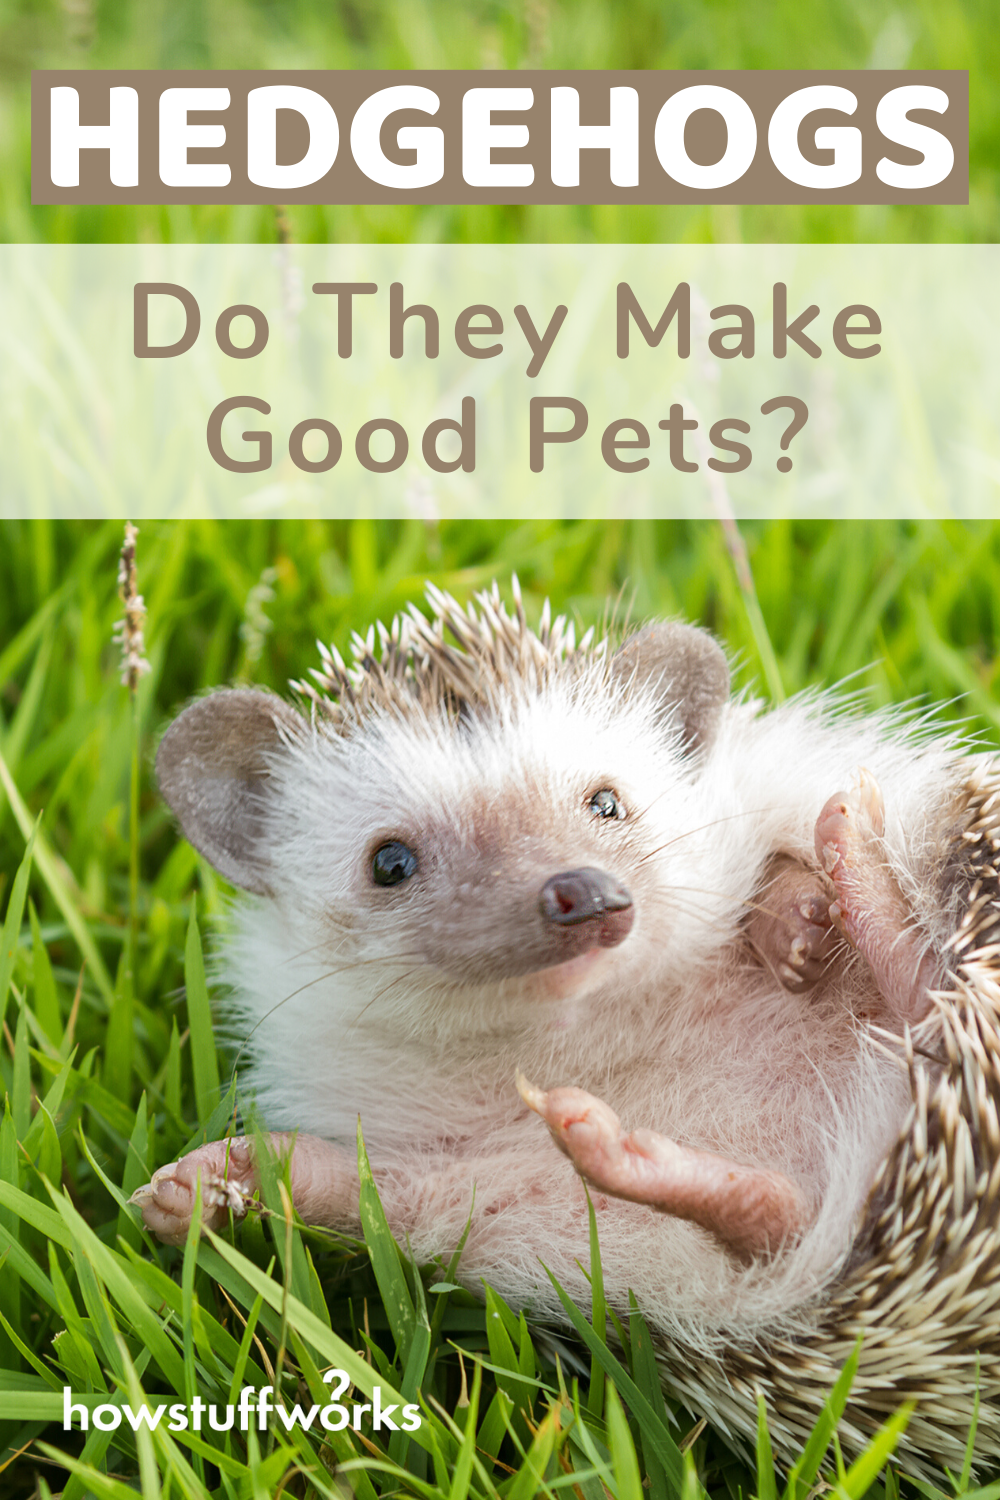 Hedgehogs Adorable But Do They Make Good Pets In 2020 Hedgehog Pet Pets Dog Love